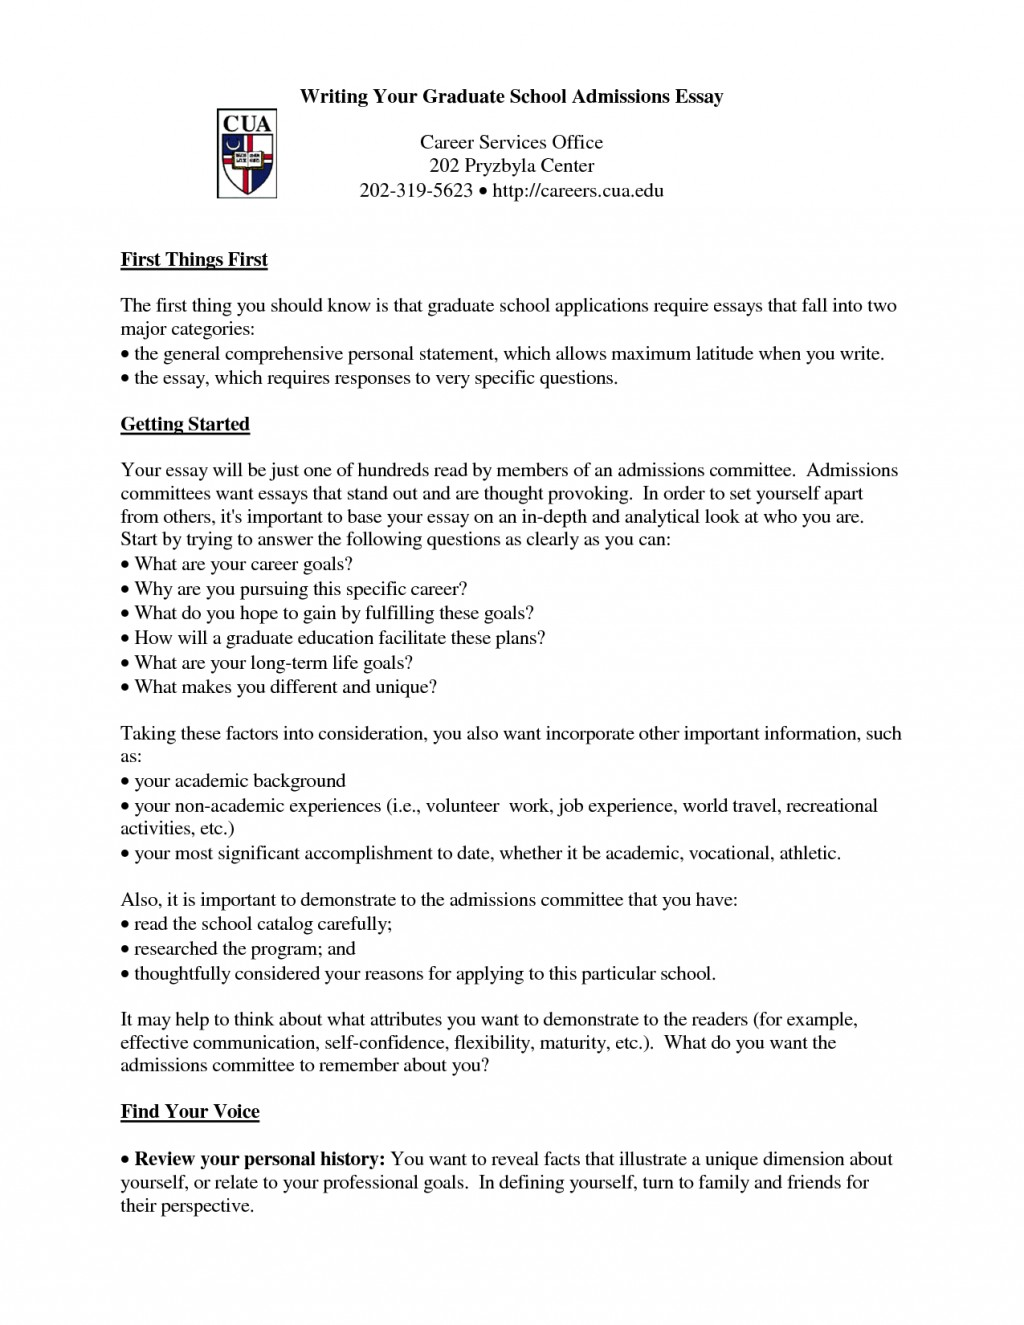 003 Essay For Master Degree Application Example Rare Pdf Sample Large